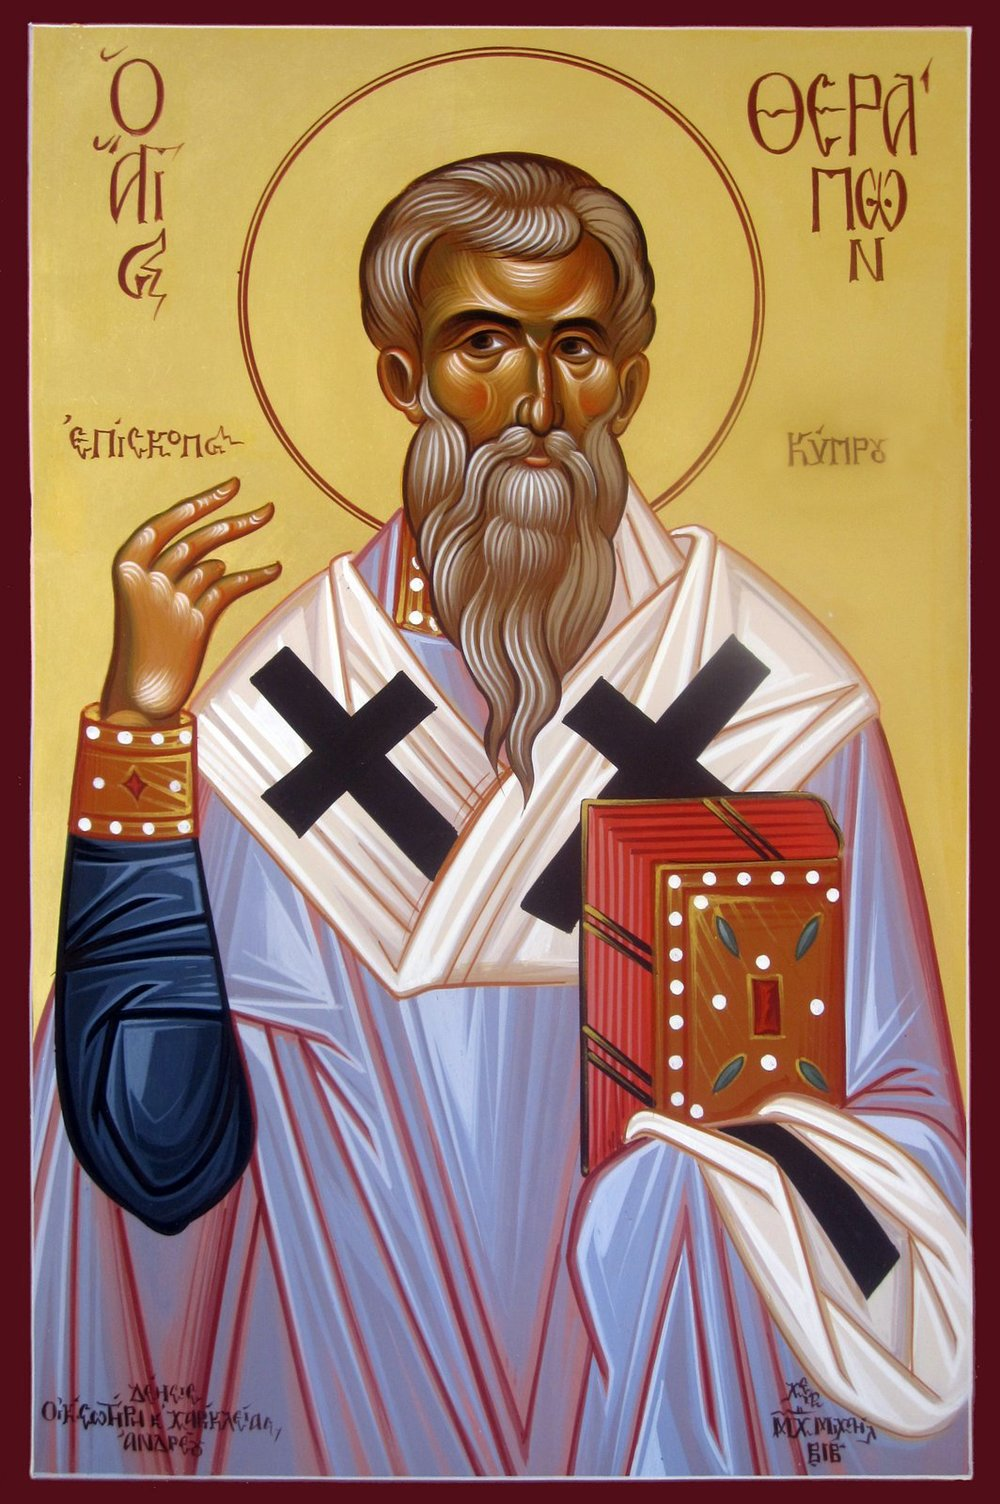 St. Therapon the Hieromartyr